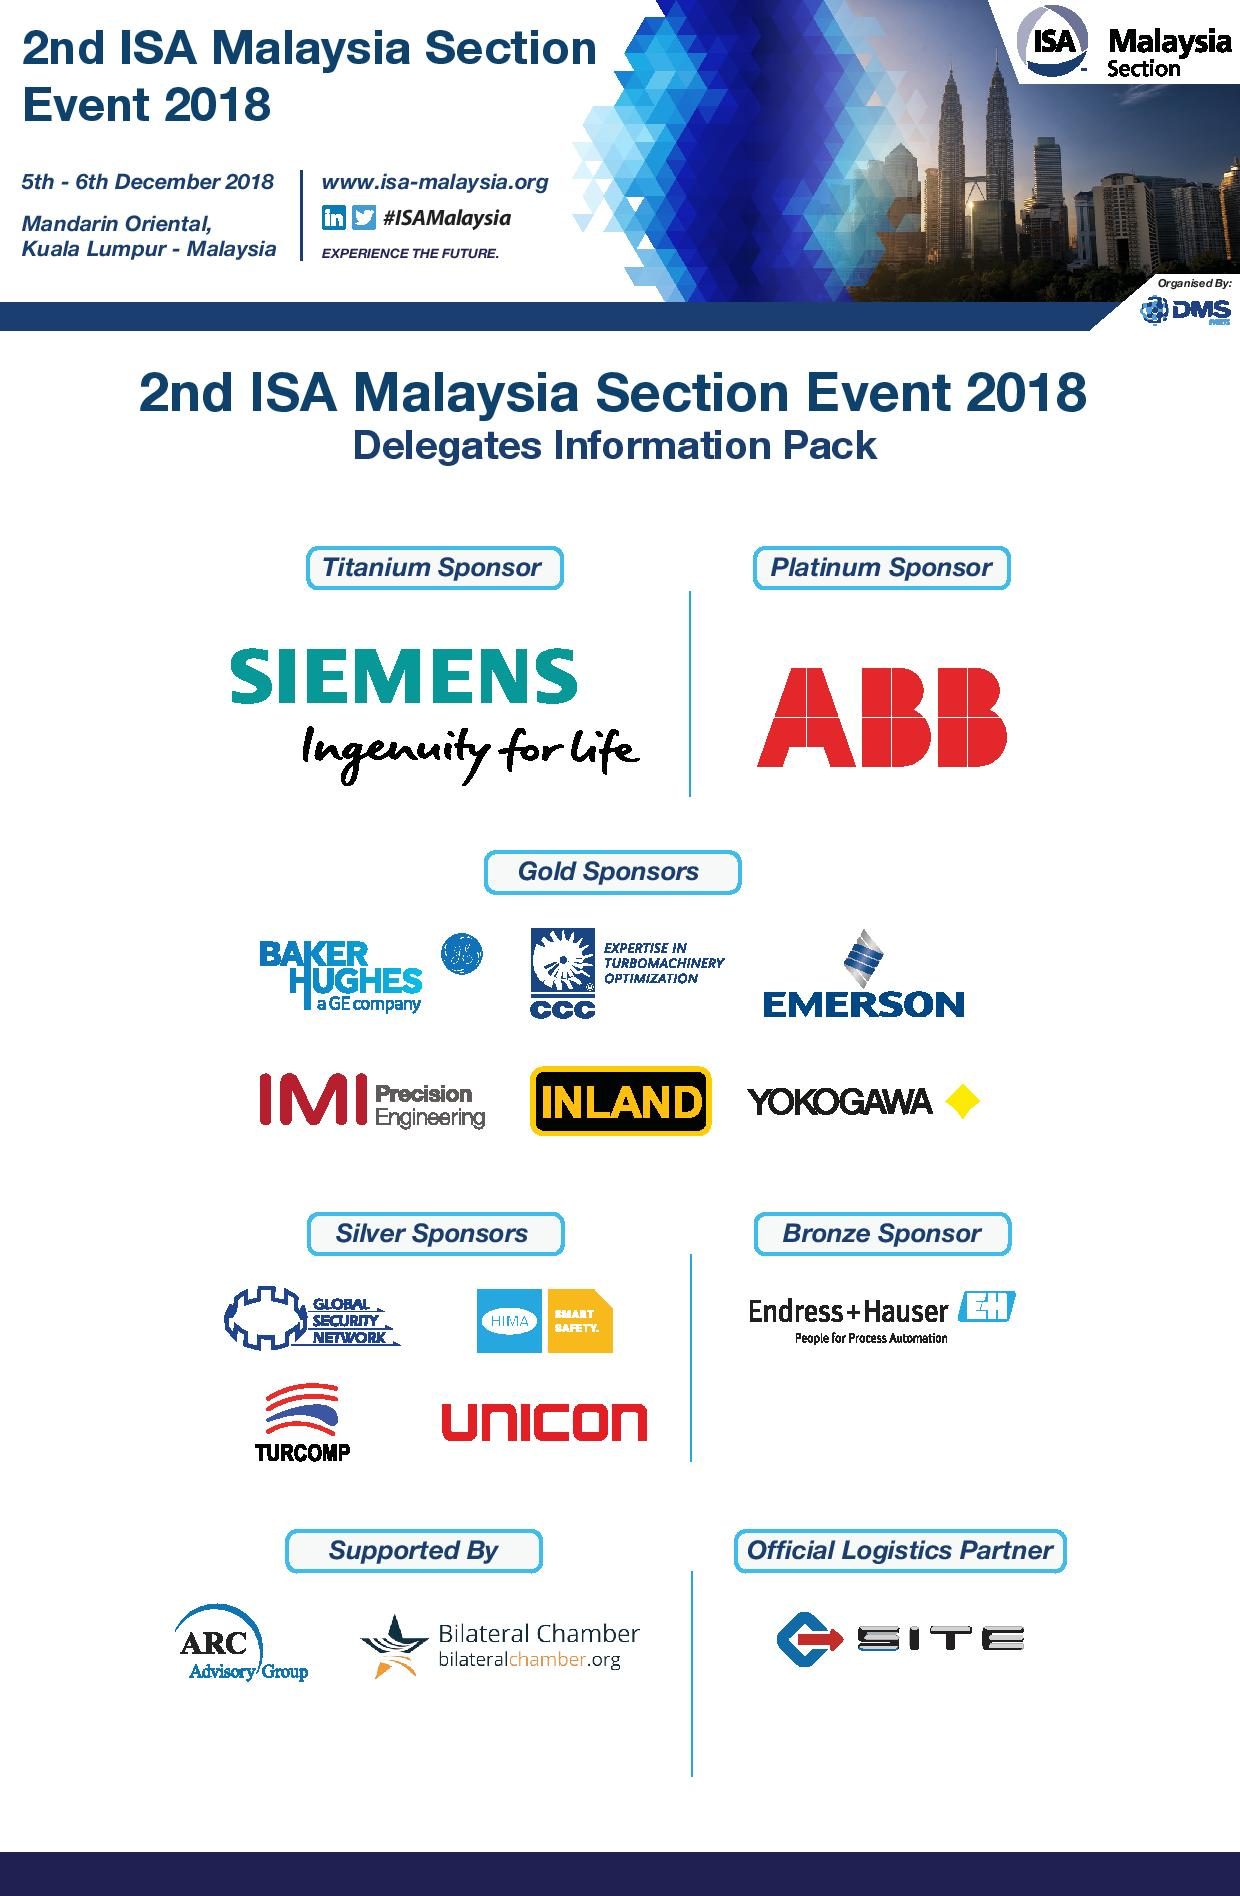 2ND ISA MALAYSIA SECTION EVENT 2018